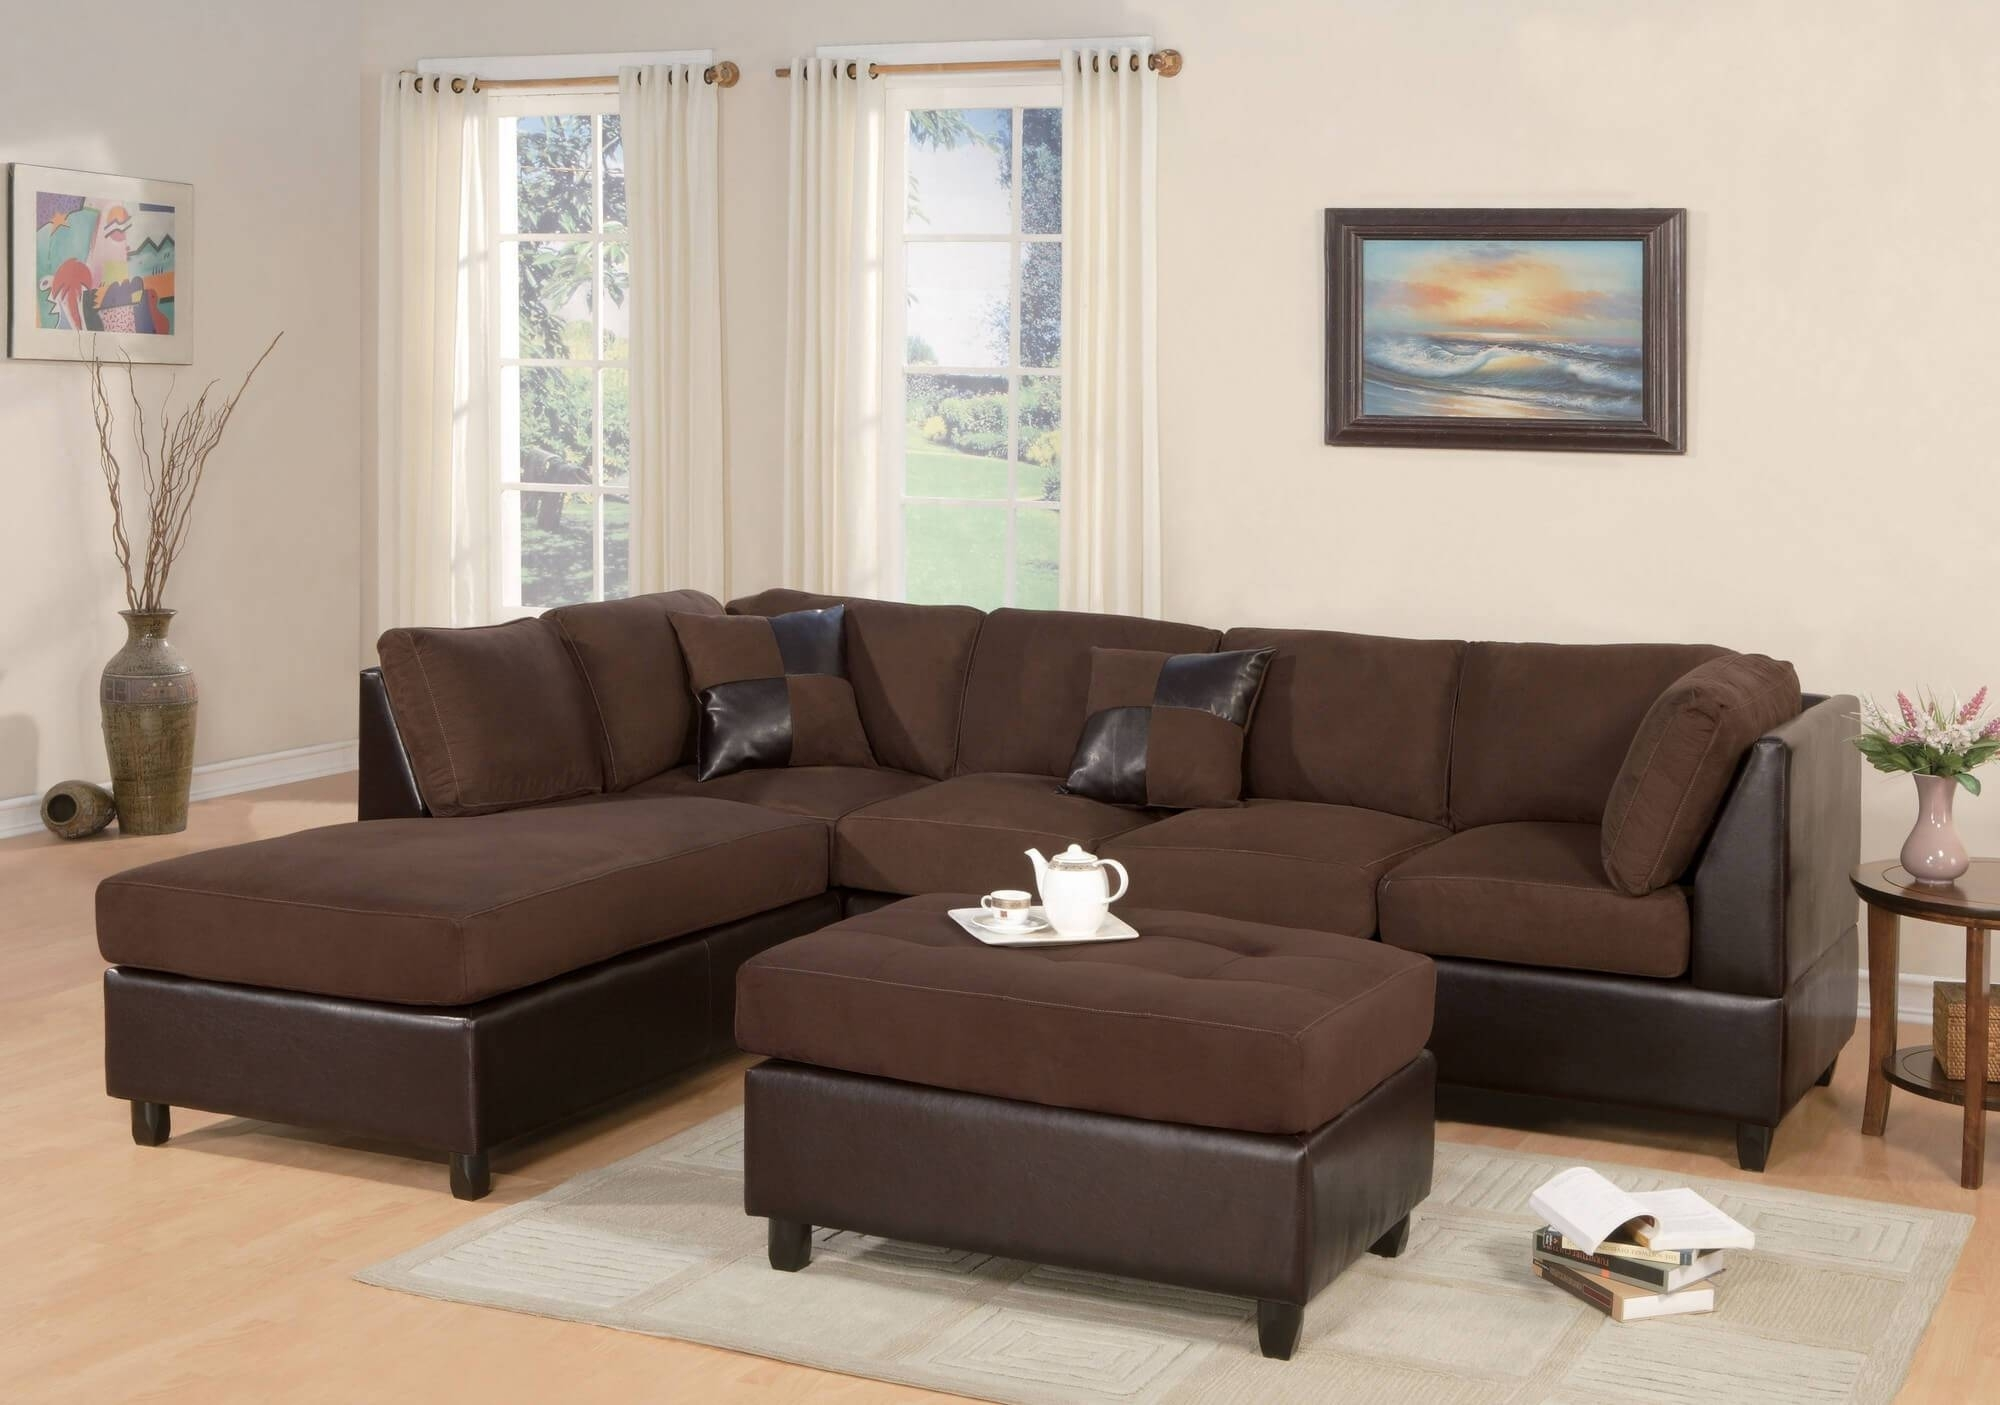 Furniture : 100 Beautiful Sectional Sofas Under 1000 Throughout Sofa Within Sectional Sofas Under (View 3 of 10)